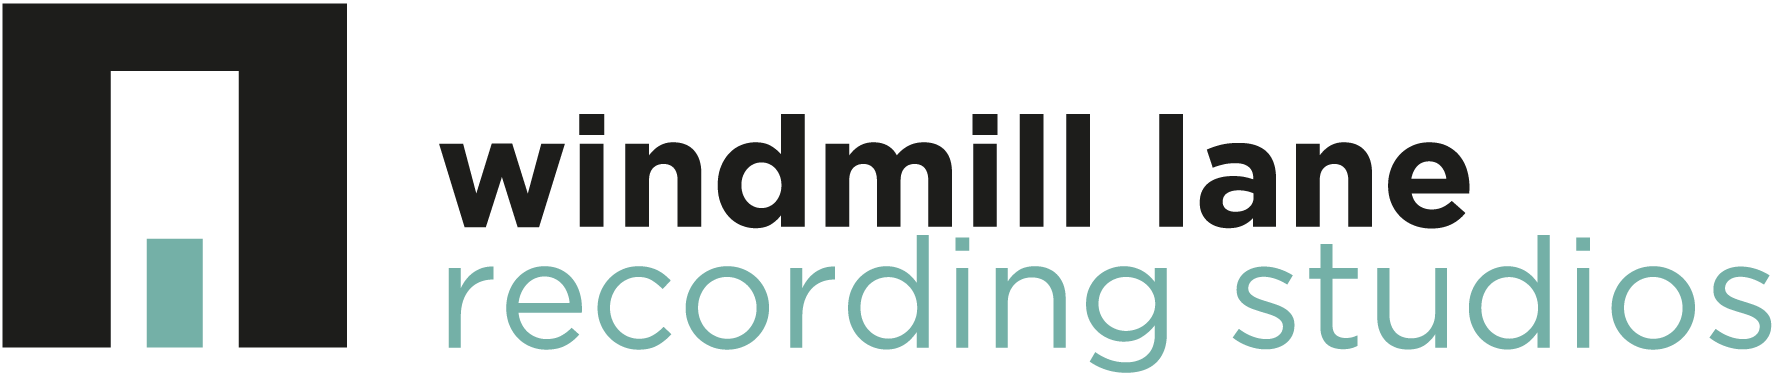 windmil lane logo new.png